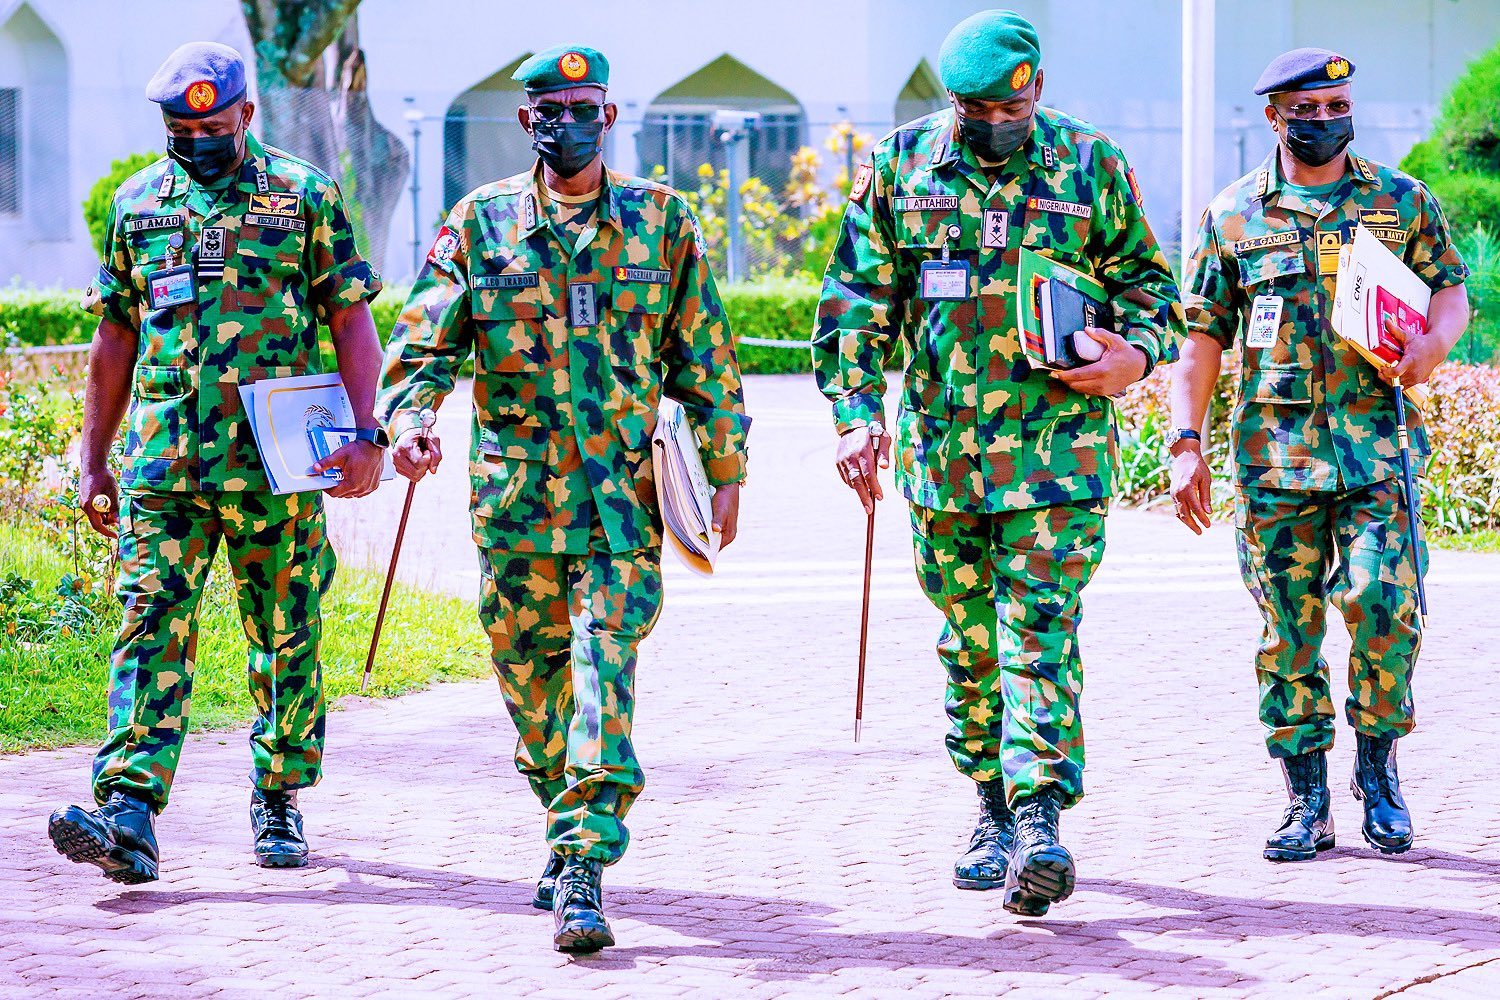 New Security Measures For South South, South East Must Mainstream Respect For Human Rights Of Civilians-: HURIWA Tells President Muhammadu Buhari: